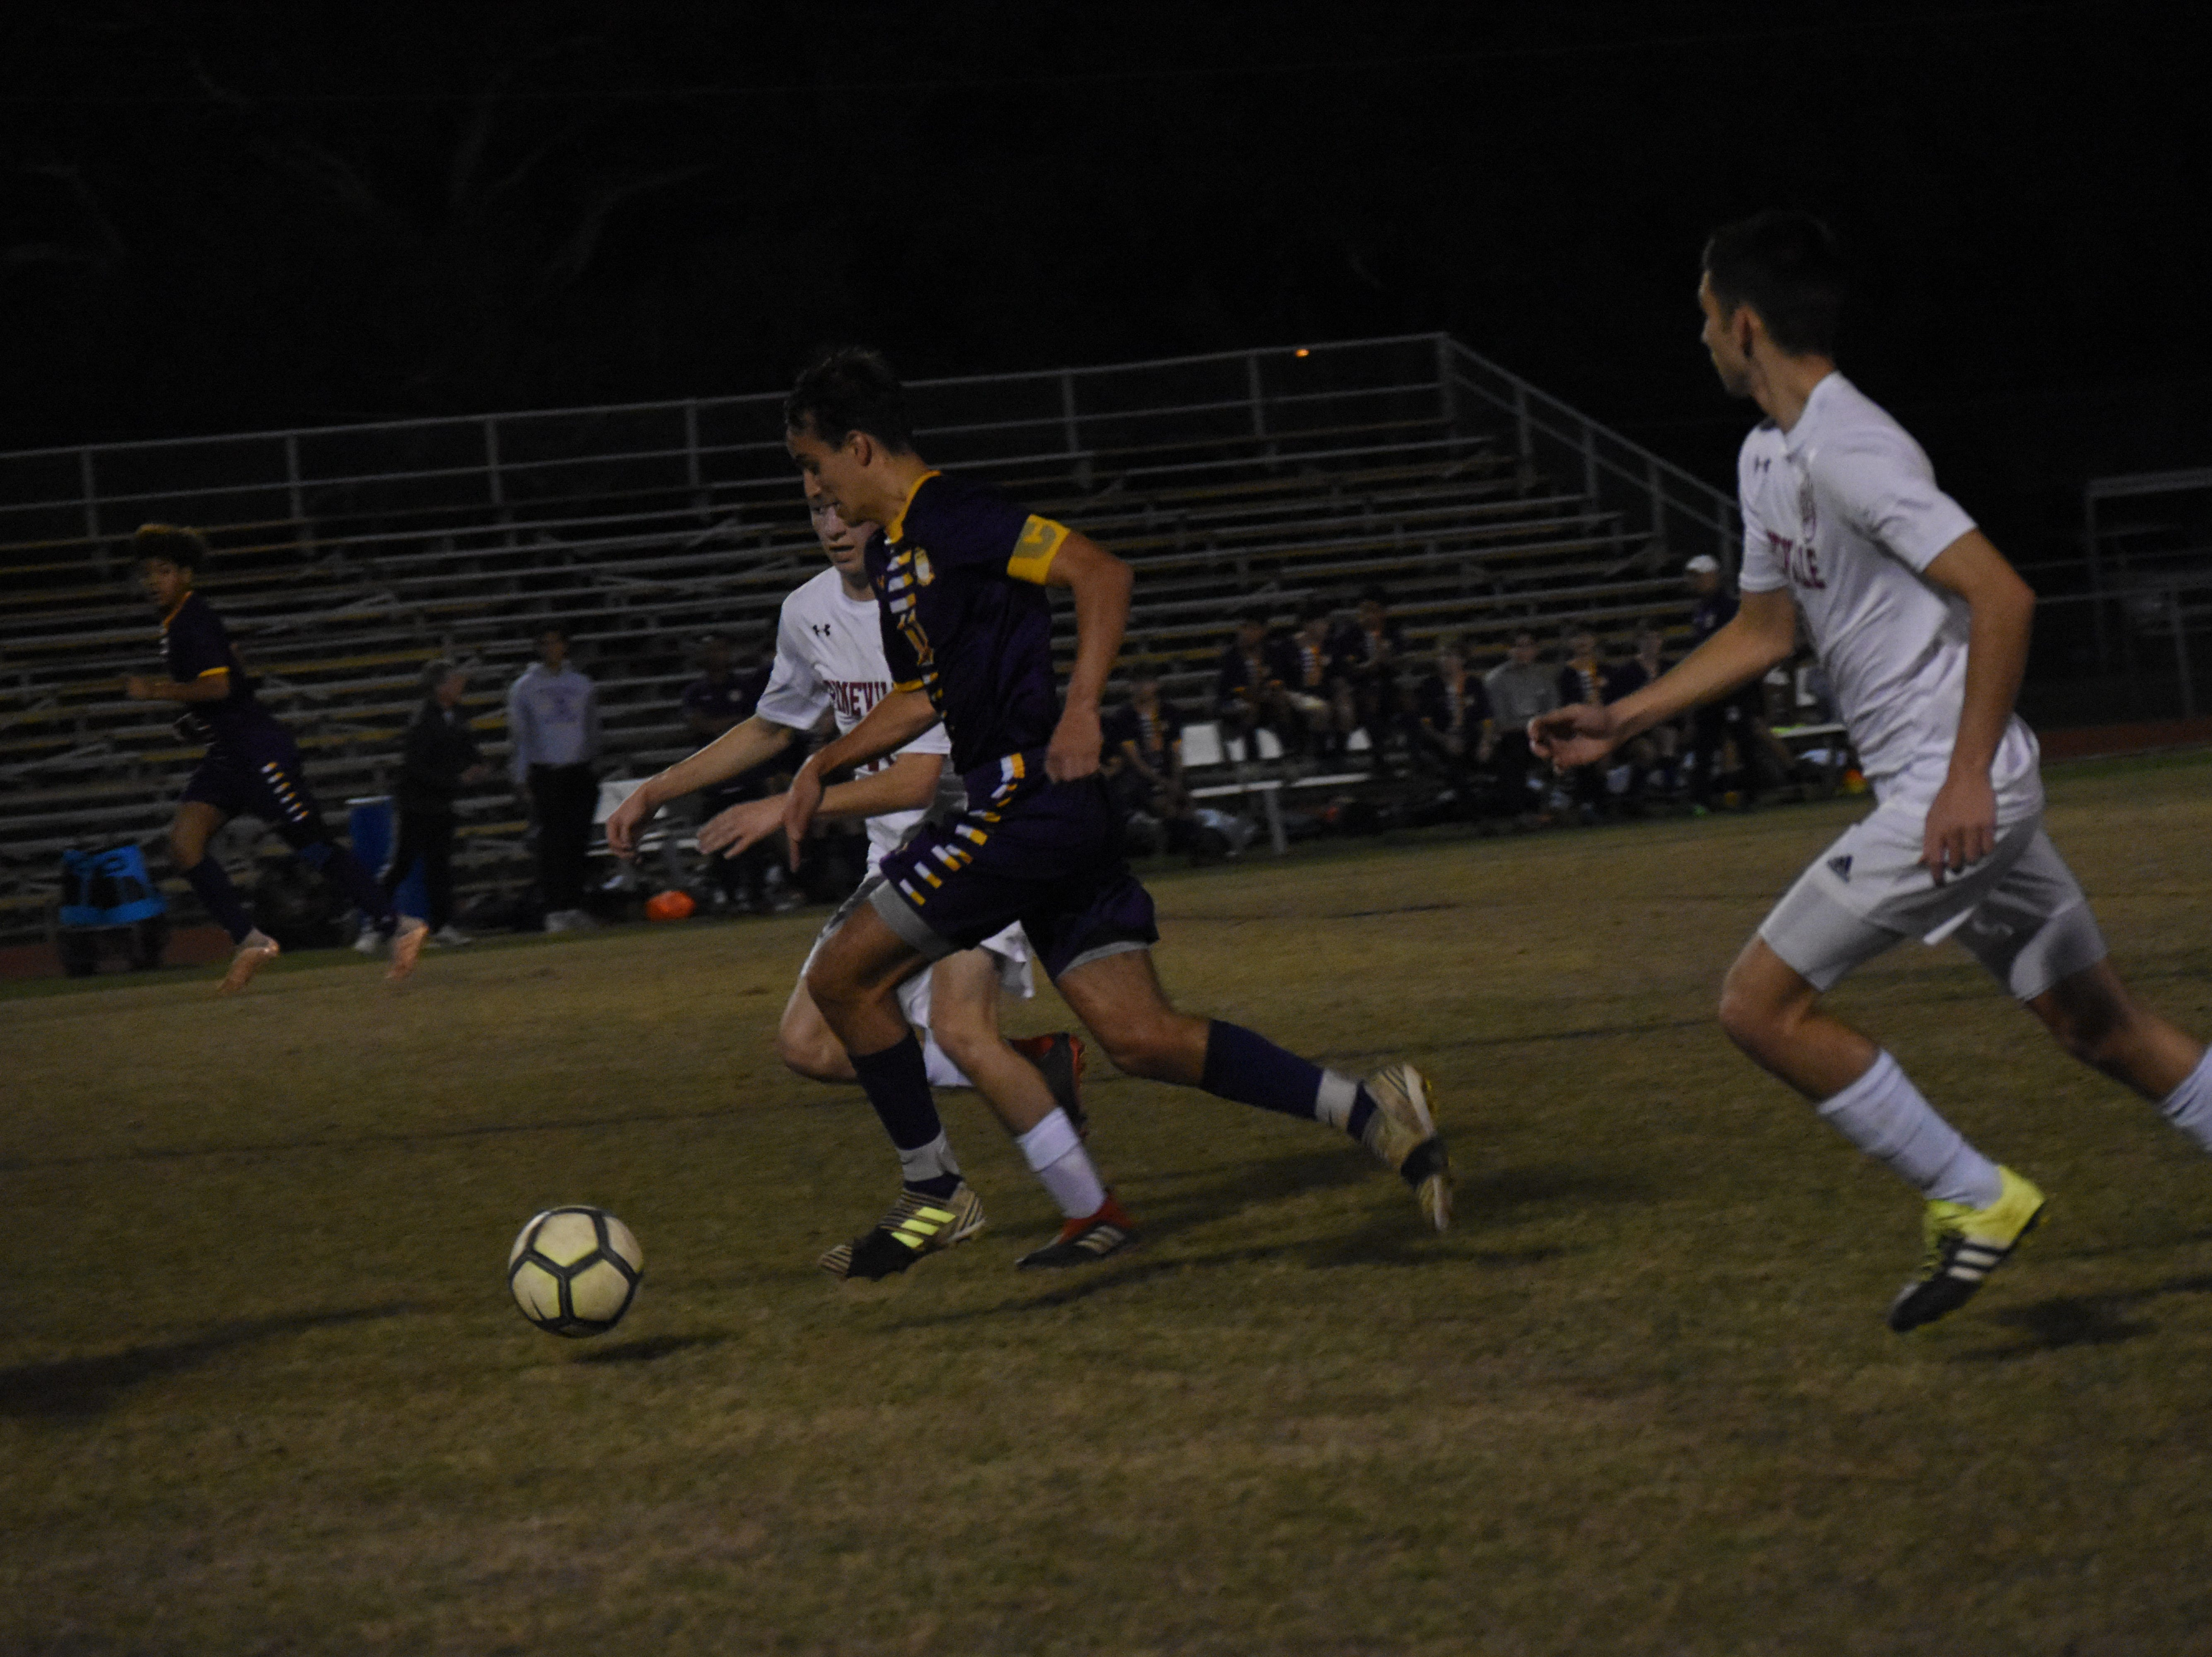 Alexandria Senior High School boys soccer hosted Pineville High School in the Division I regionals held Wednesday, Feb. 6, 2019. ASH won 4-3.